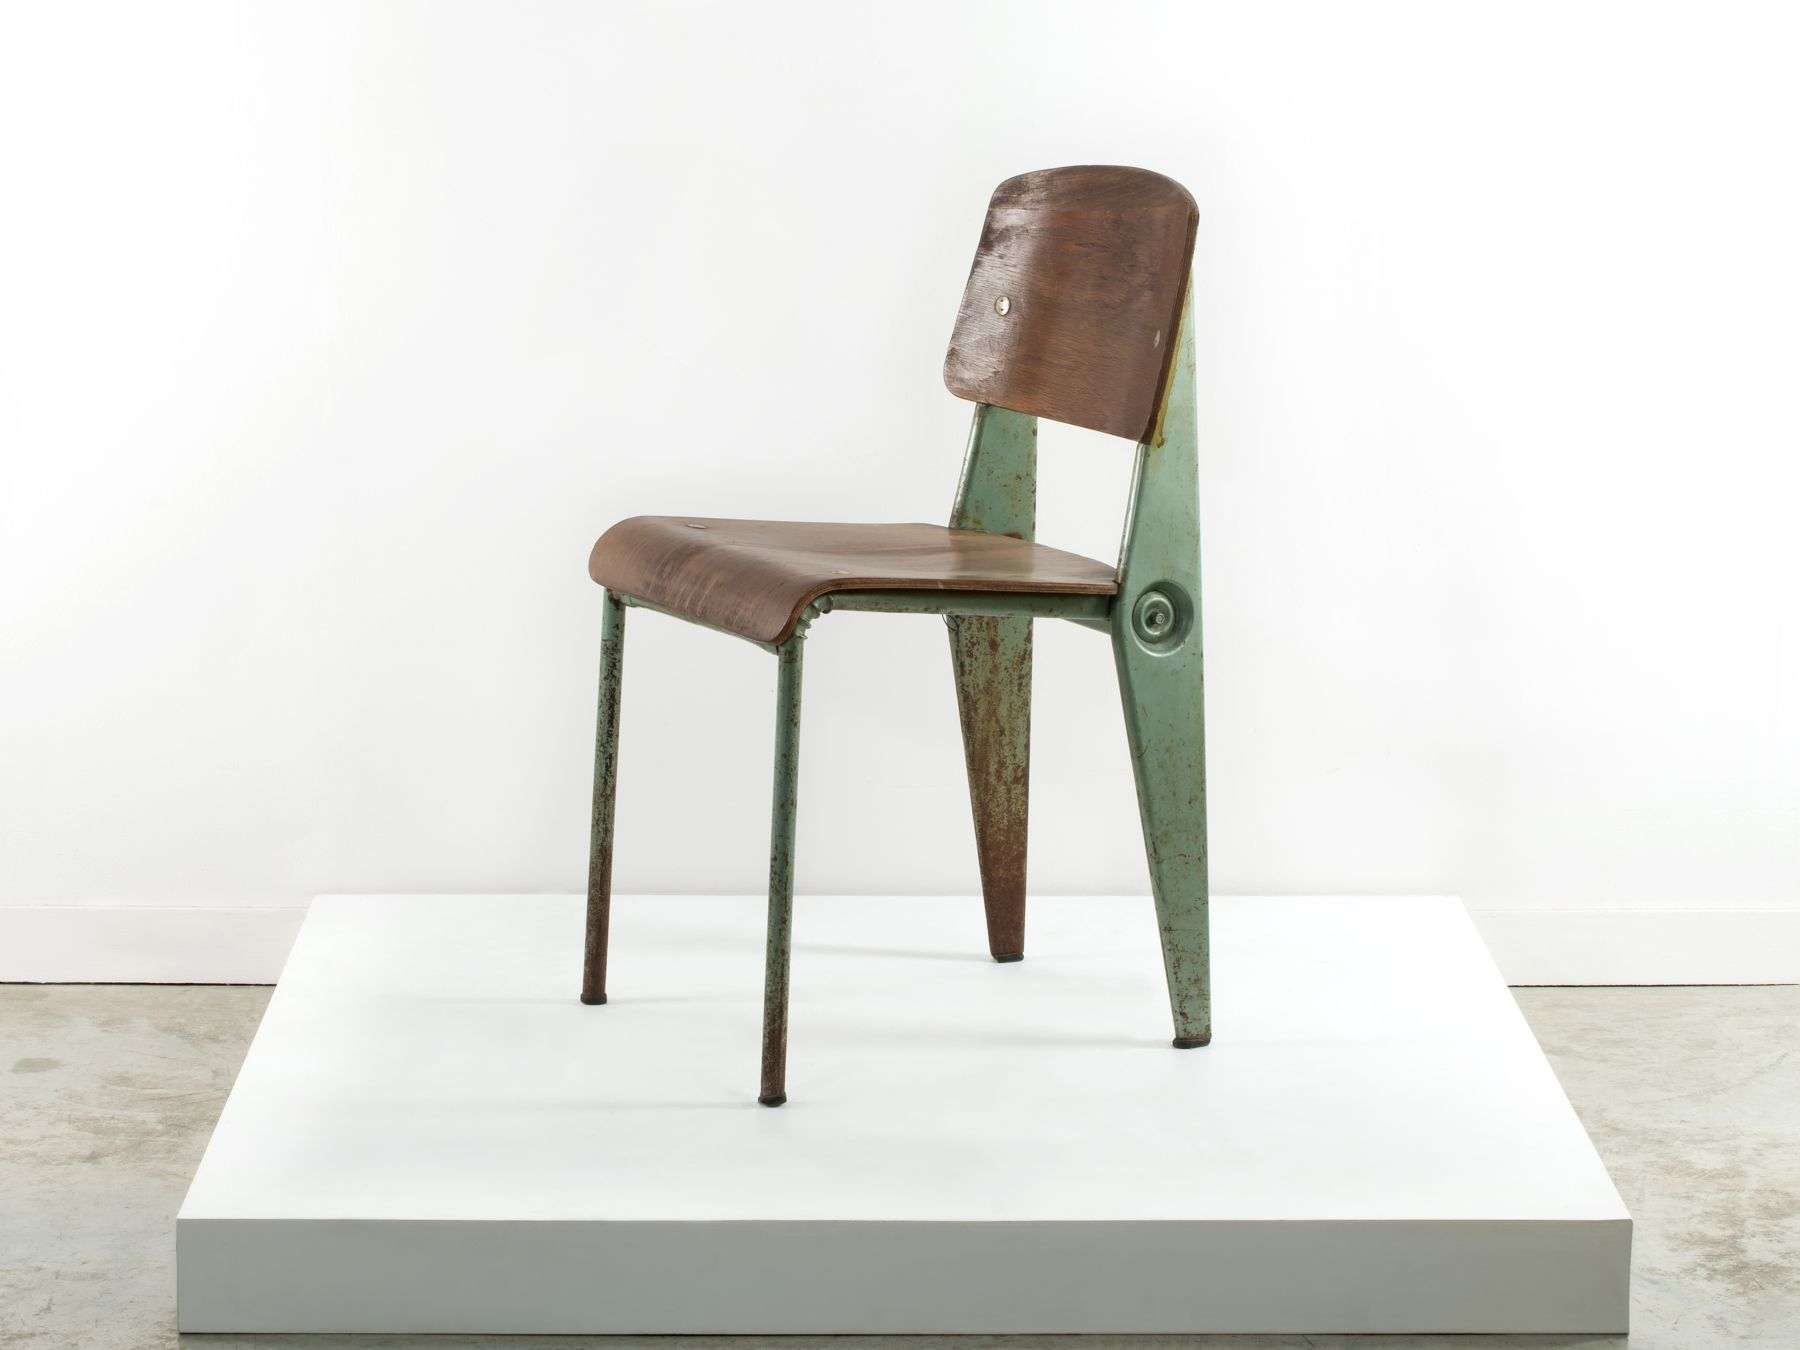 Vente design chez artcurial le 20 mai 2015 the good old dayz - Chaise de jean prouve ...